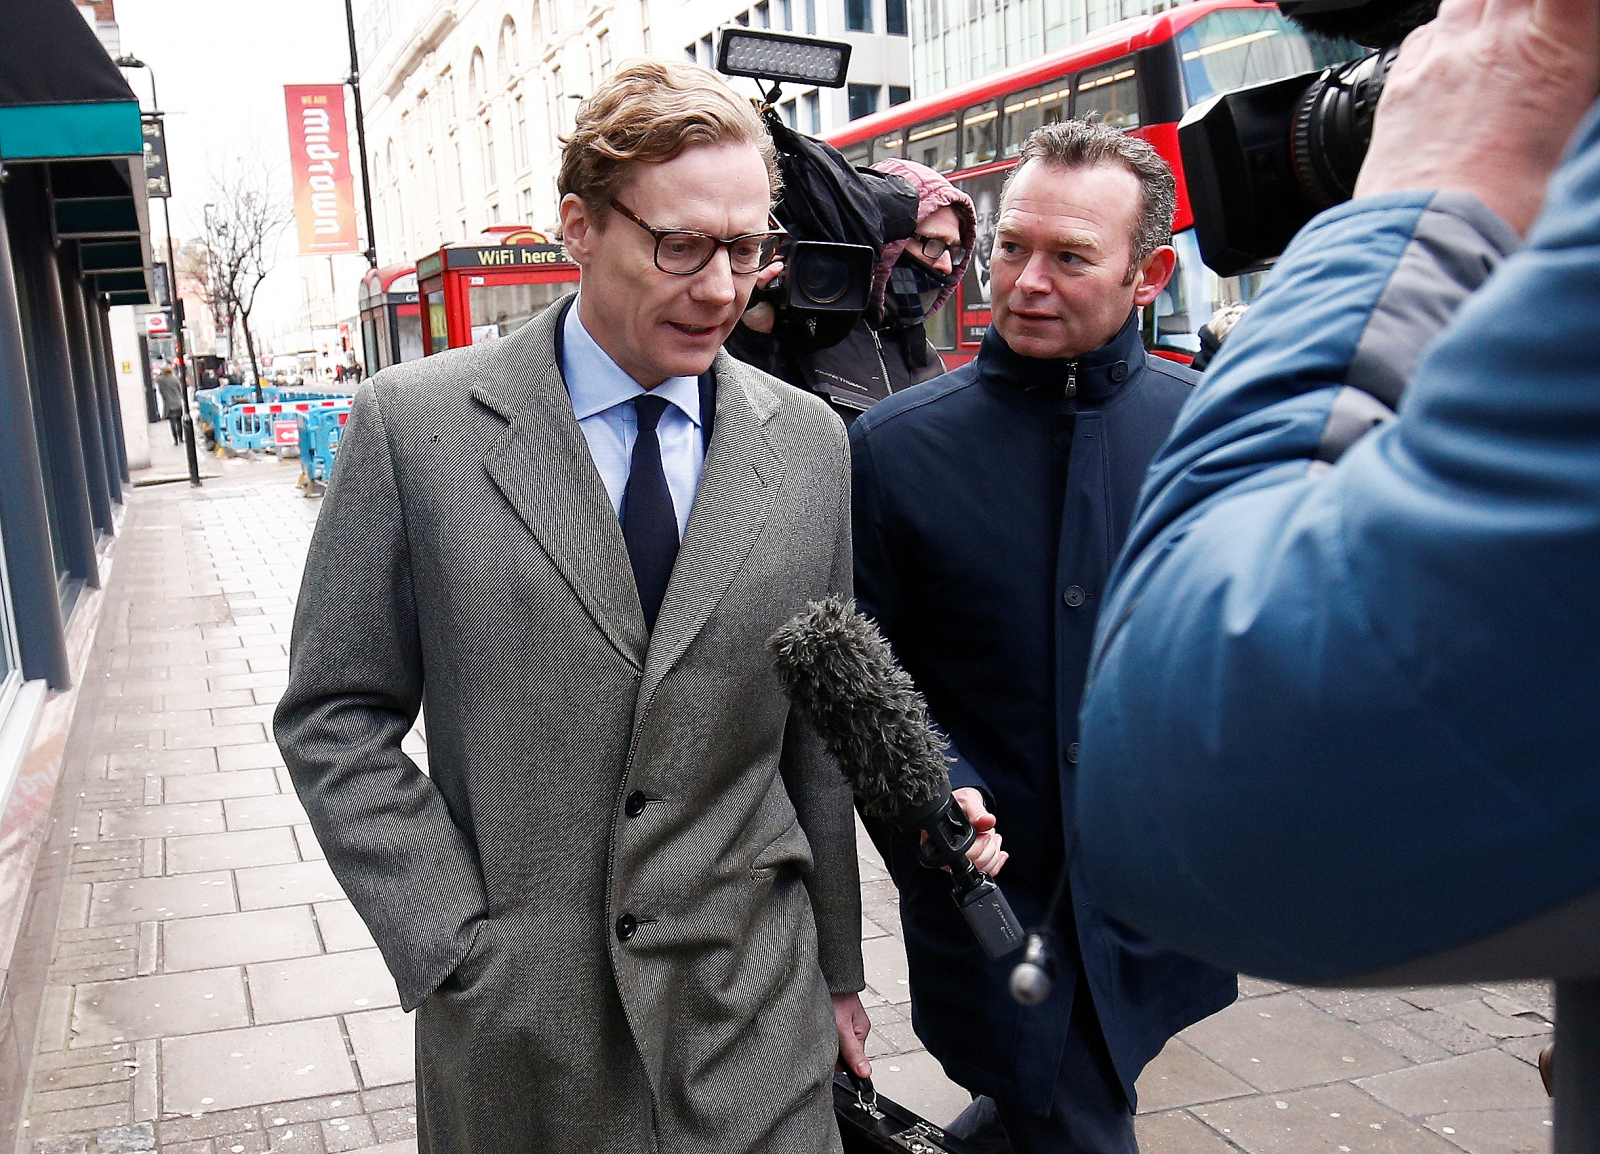 Alexander Nix, Cambridge Analytica